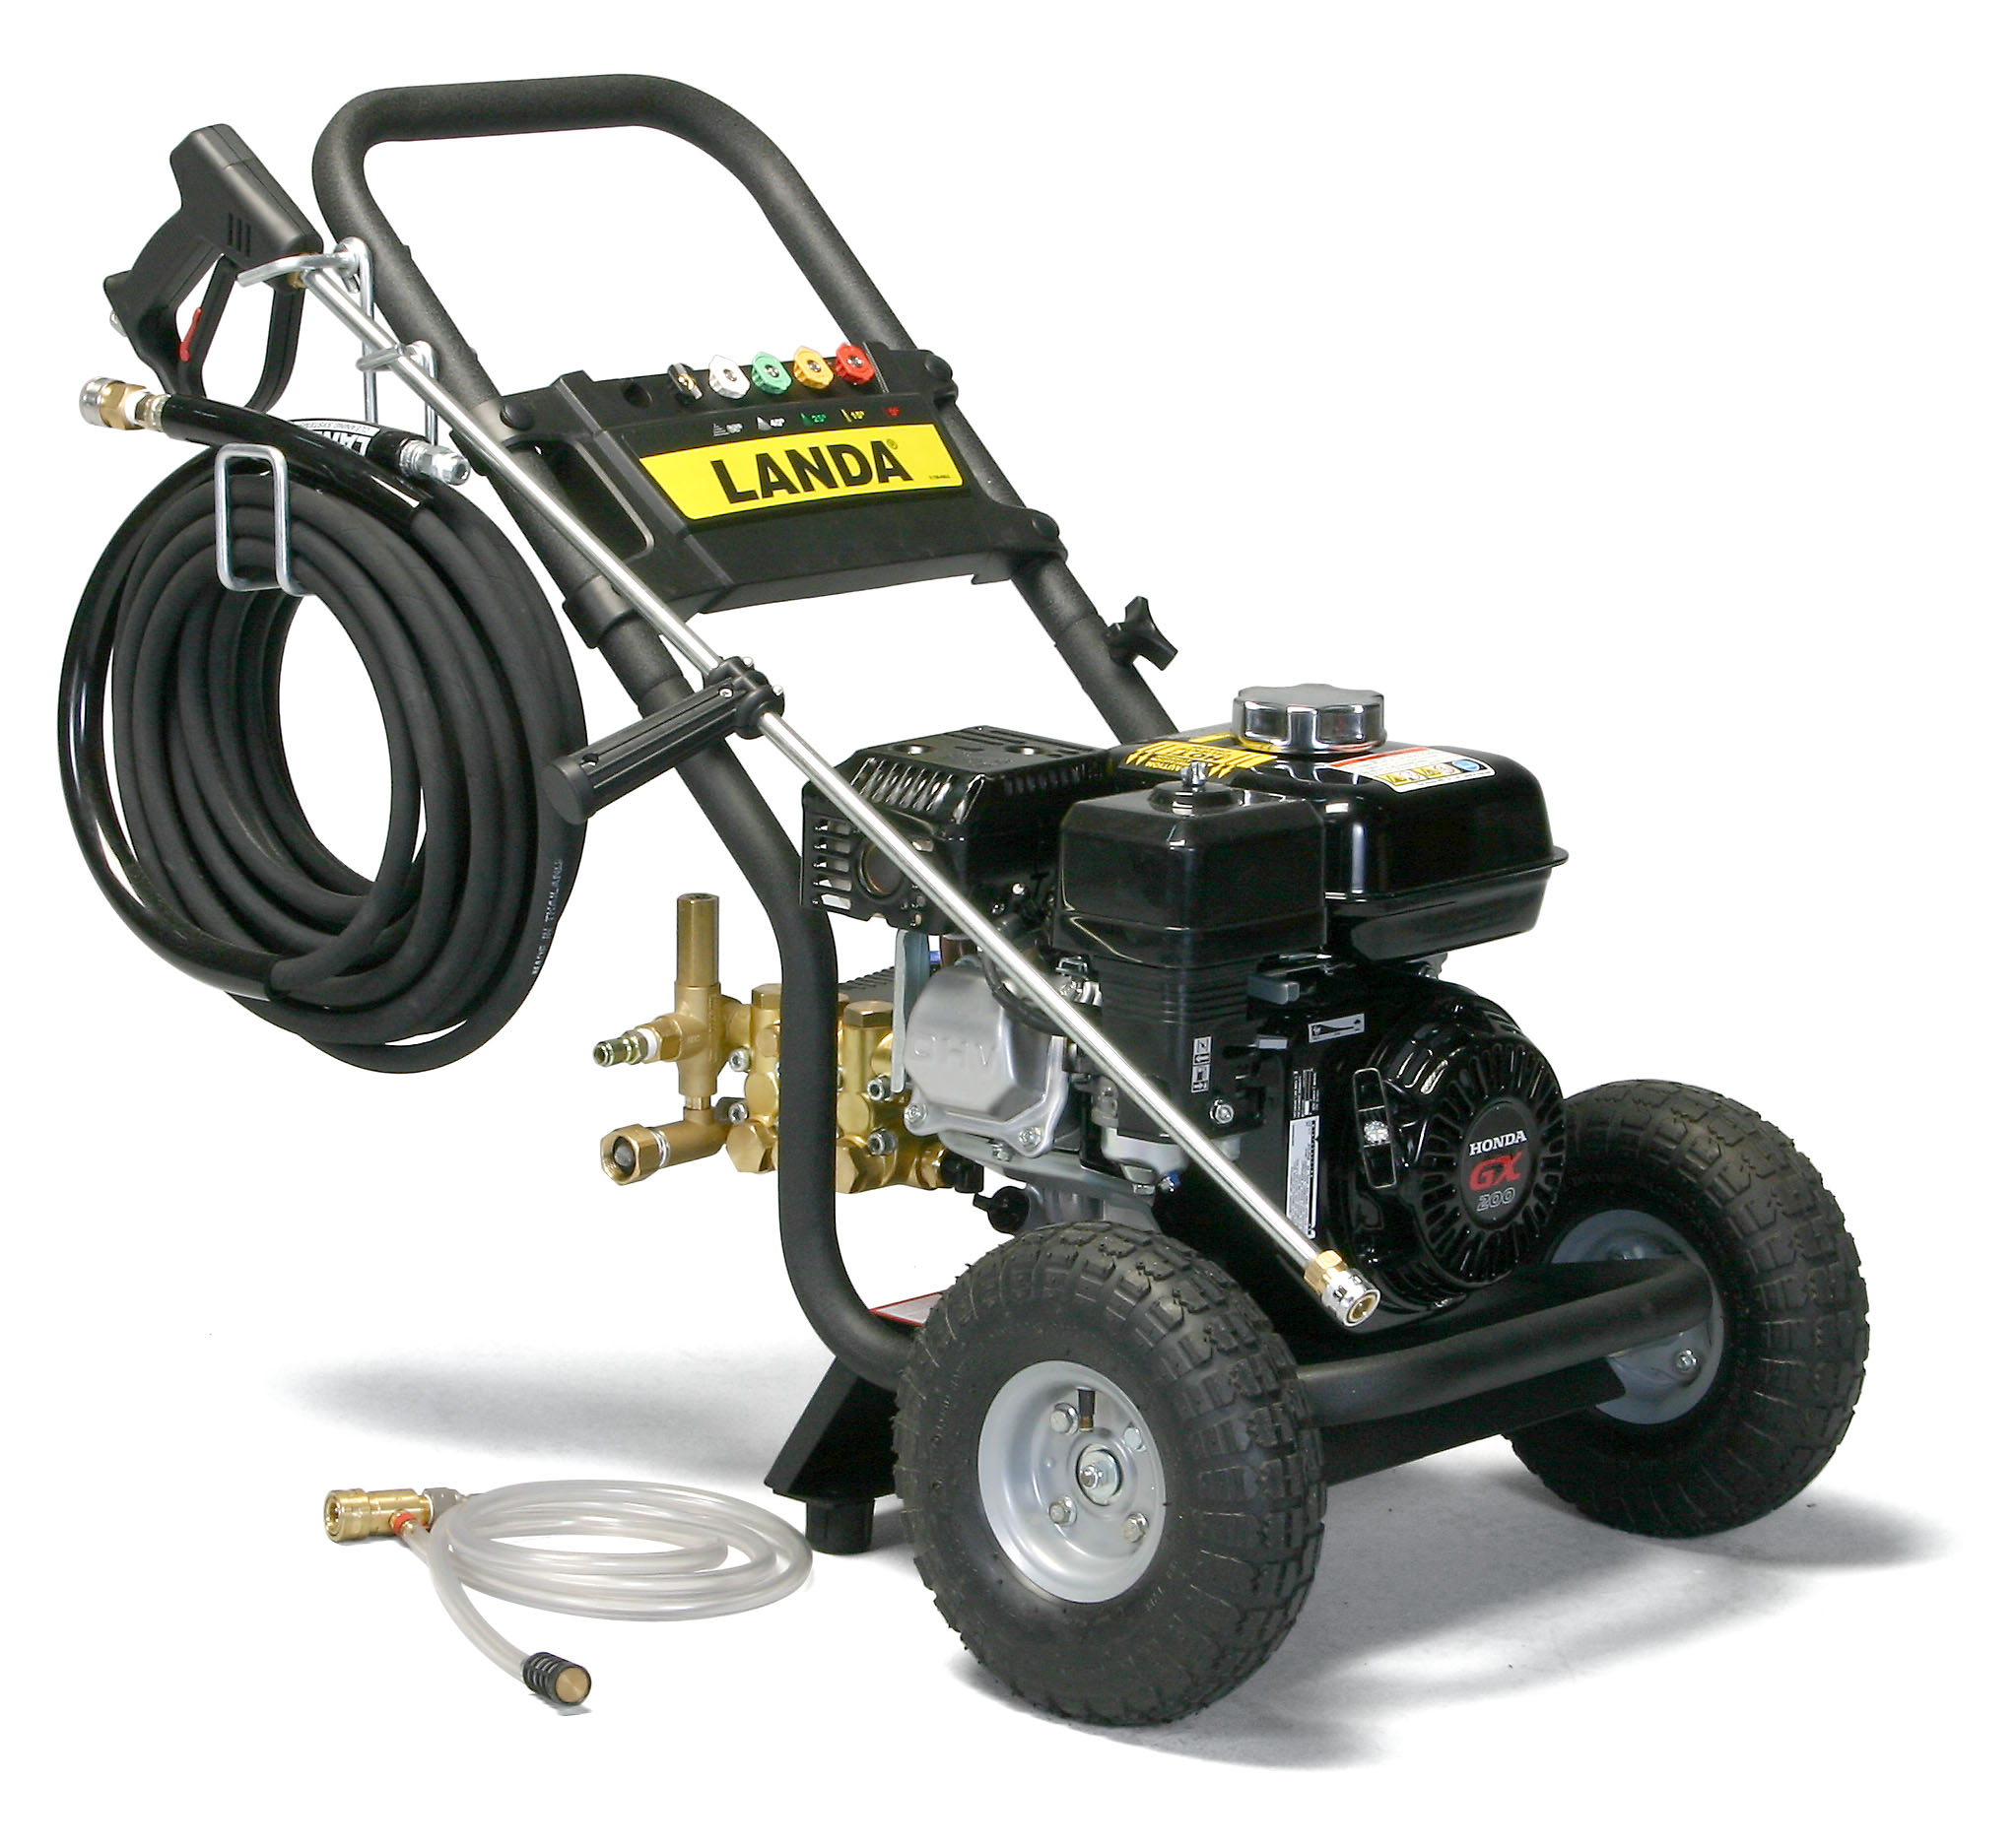 Landa Cold Water Direct Drive Pressure Washer PD3-23326